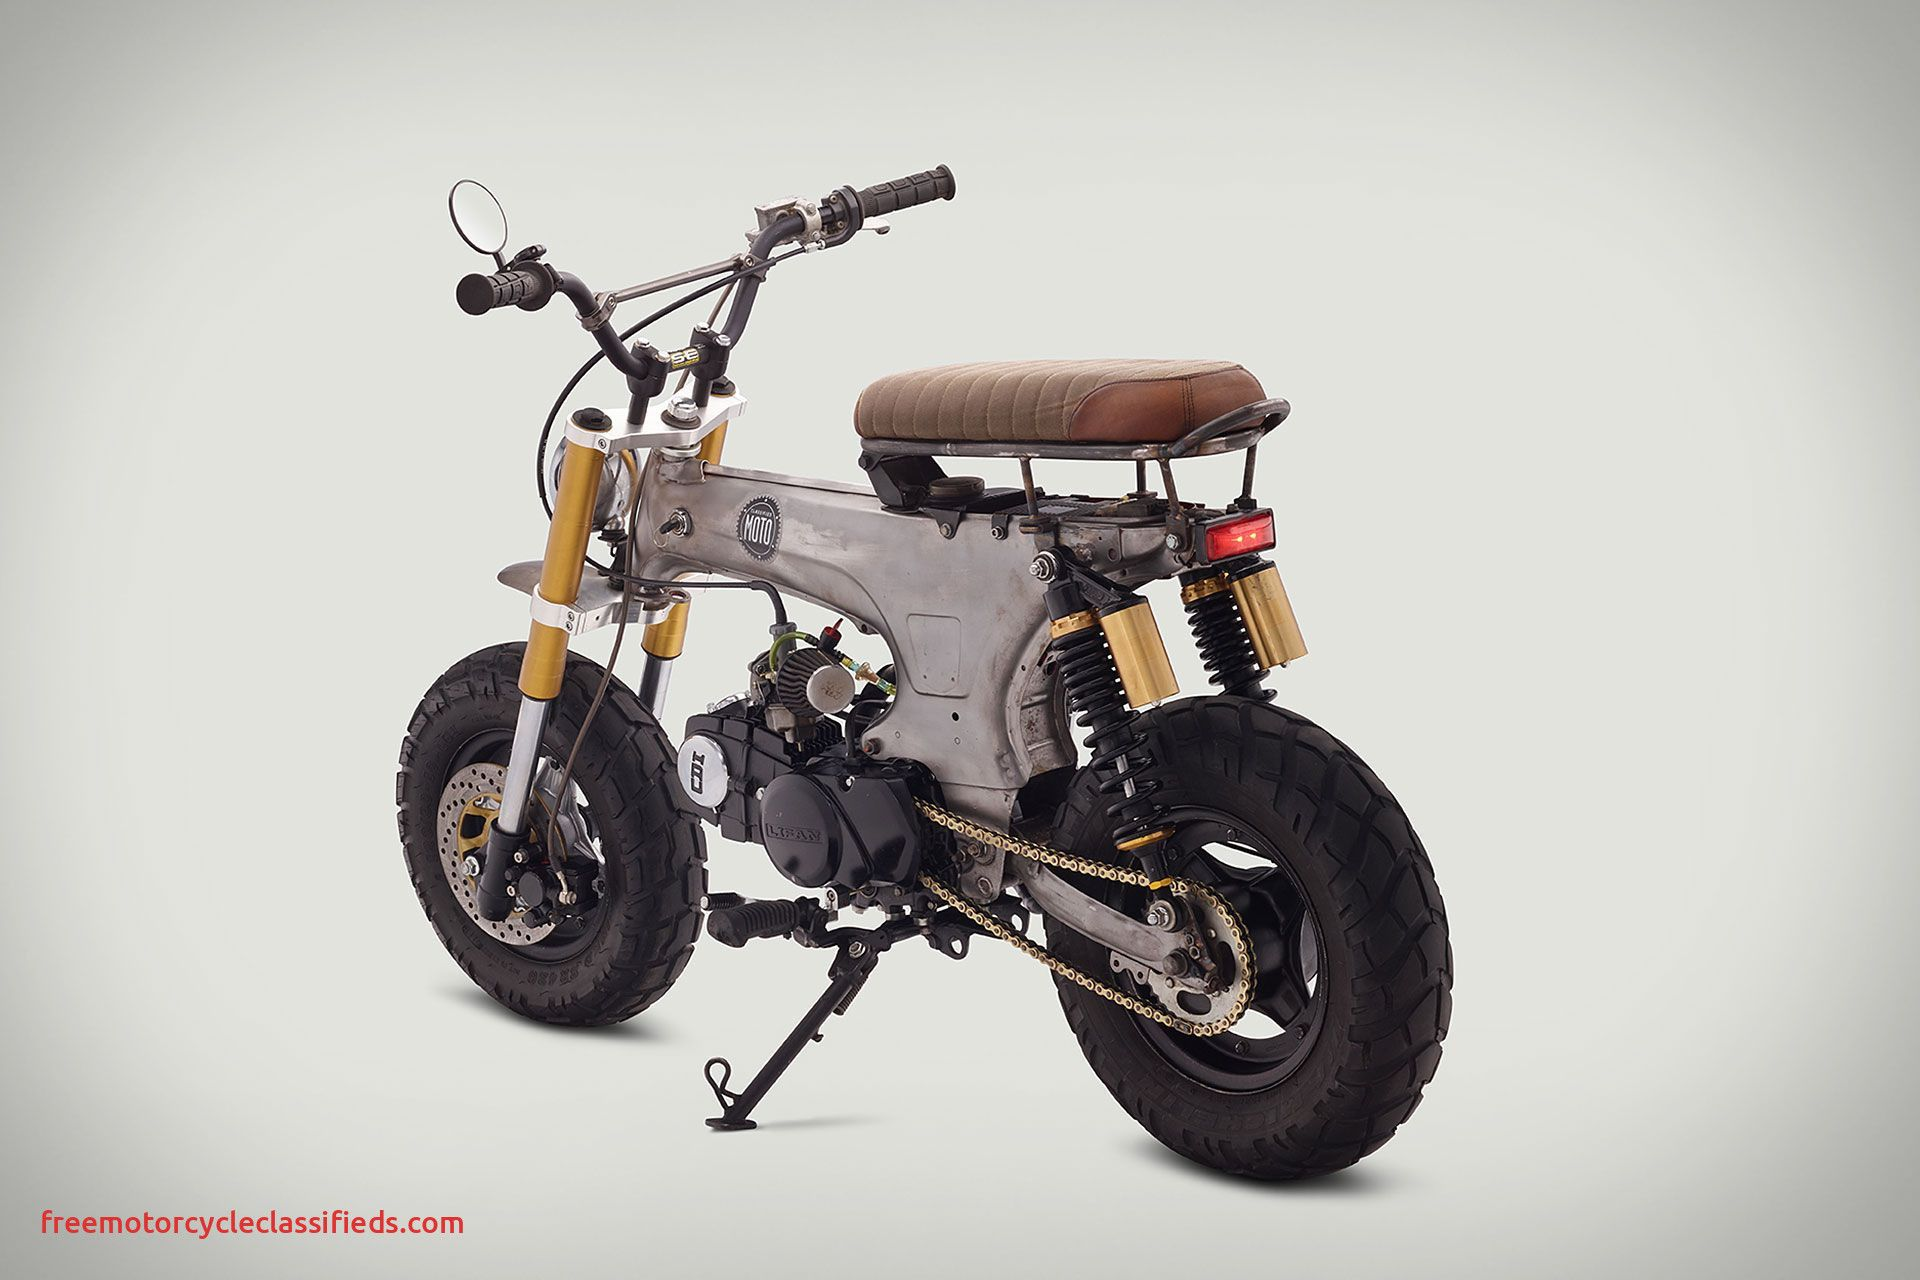 Best Of Motorcycle Classifieds di 2020 Mobil, Motor